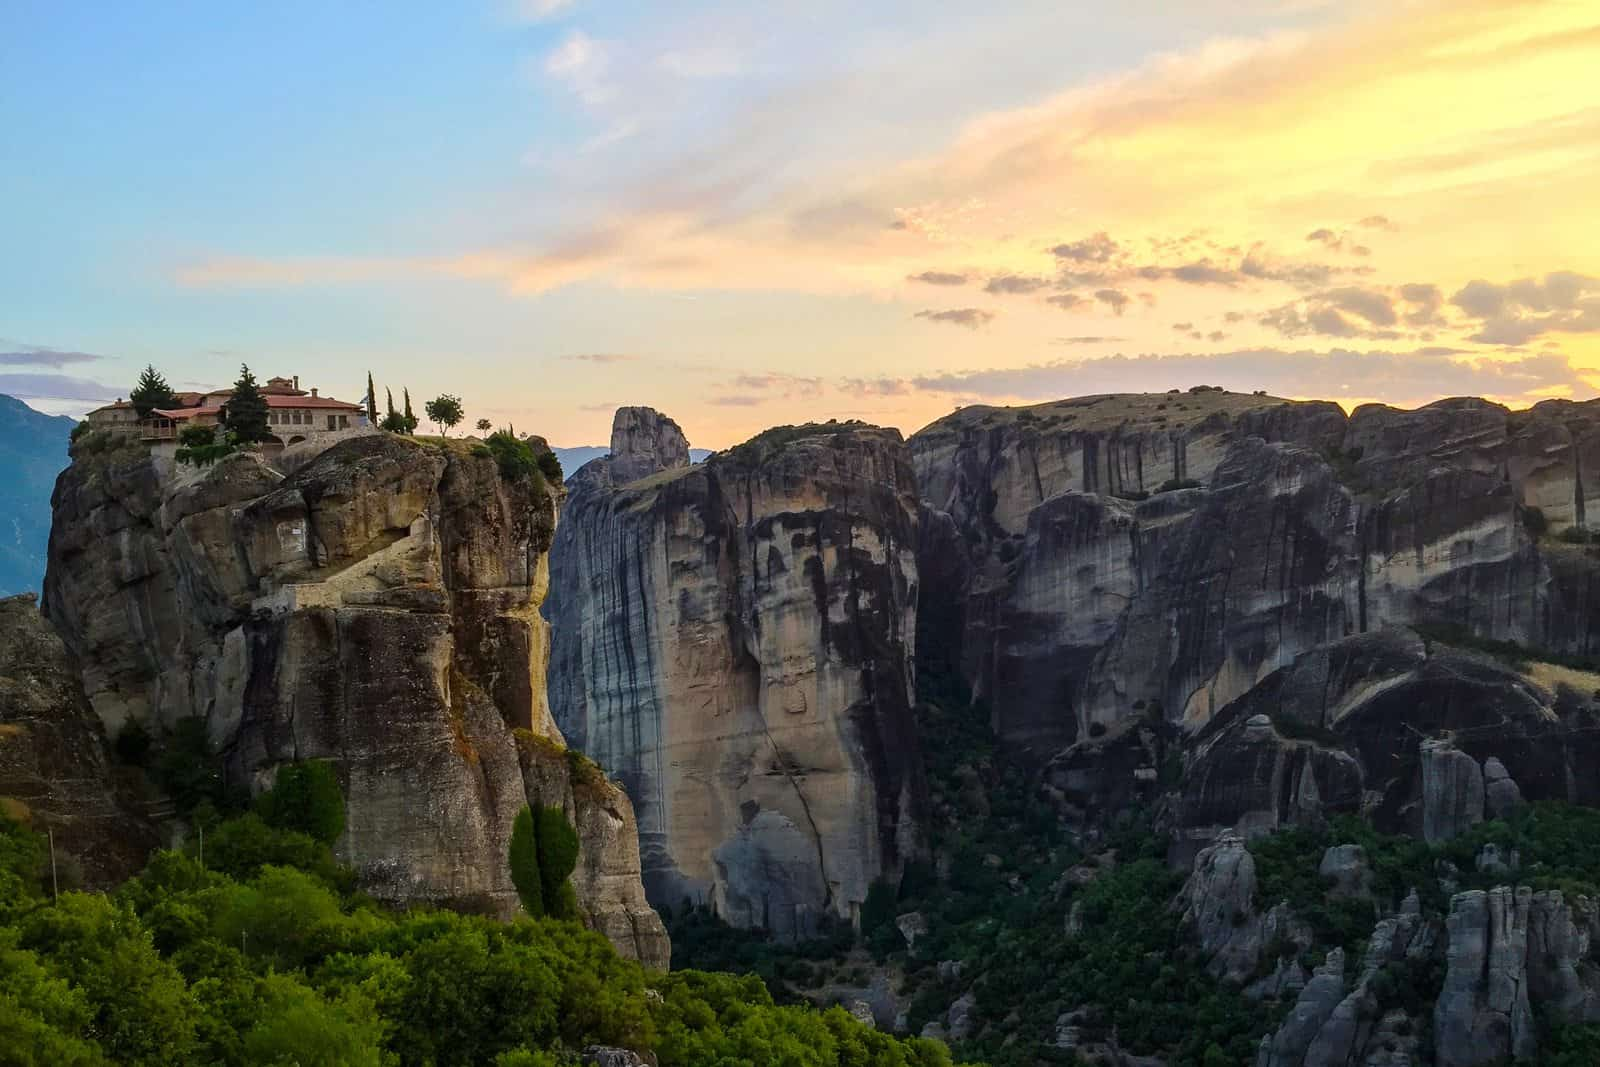 Sunset in Meteora, Pictures of Greece